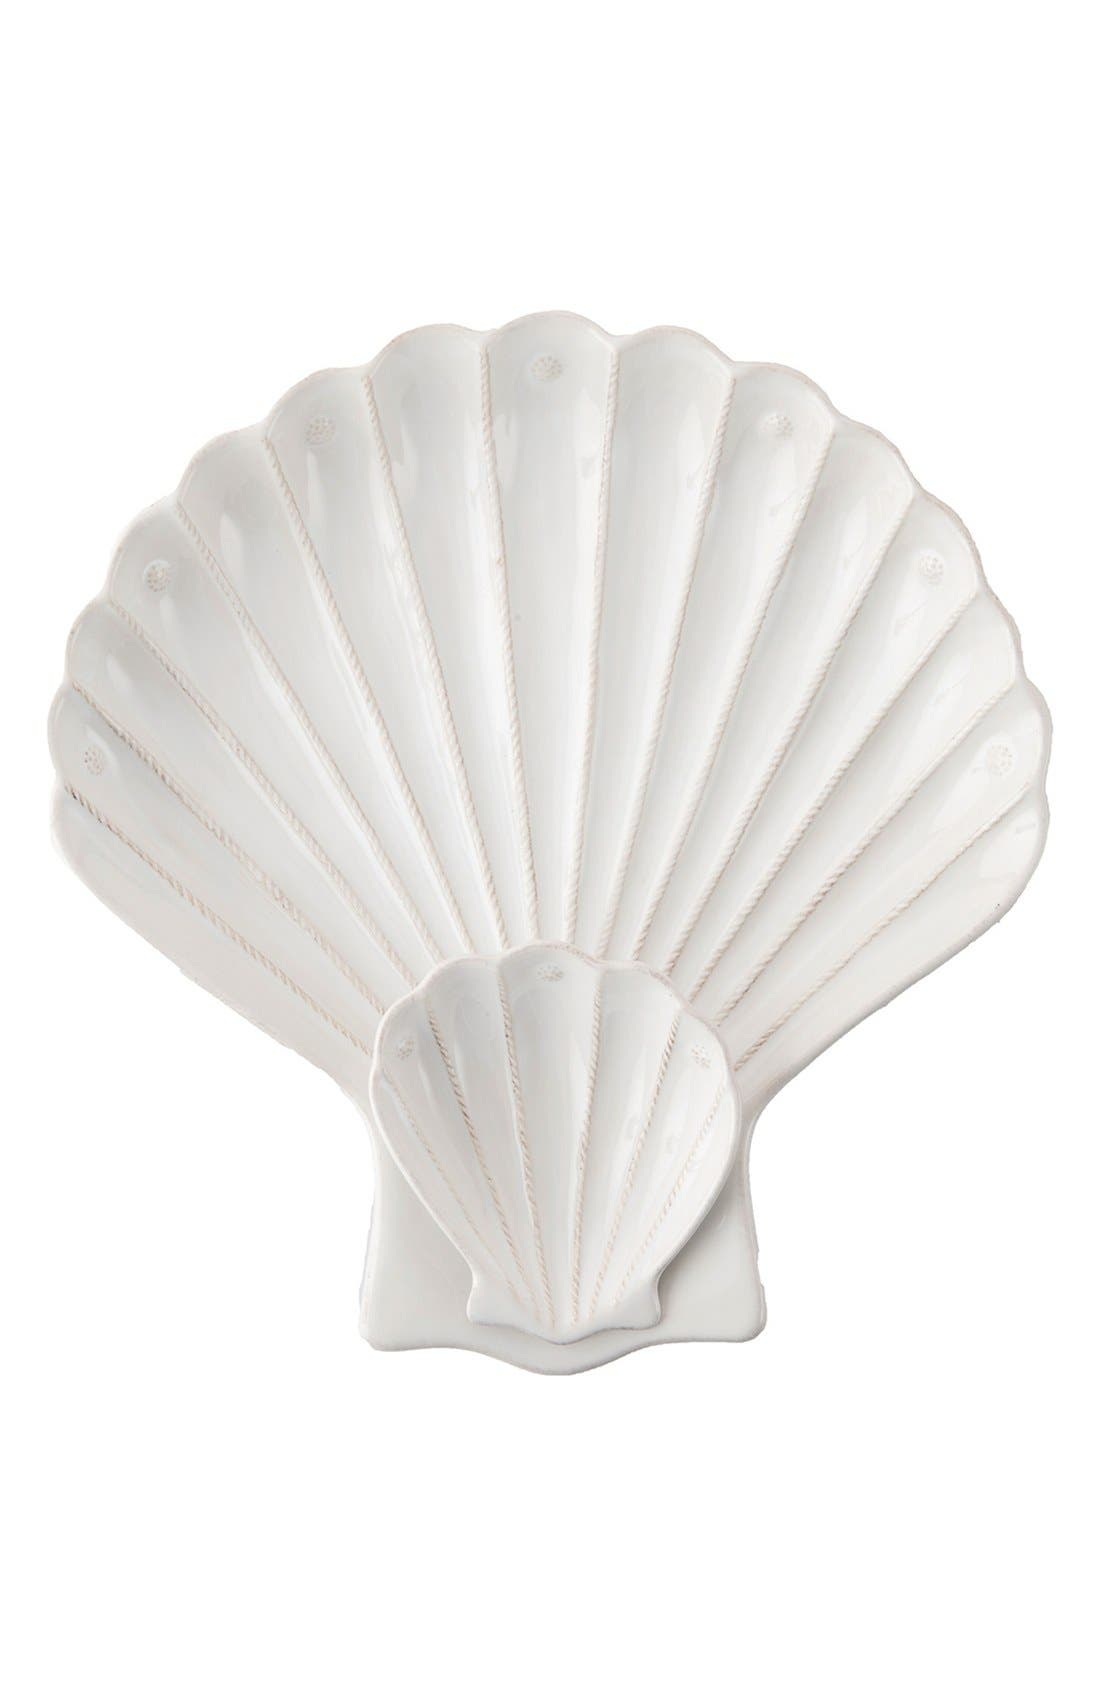 JULISKA 'Berry and Thread' Shell Appetizer Serving Plate